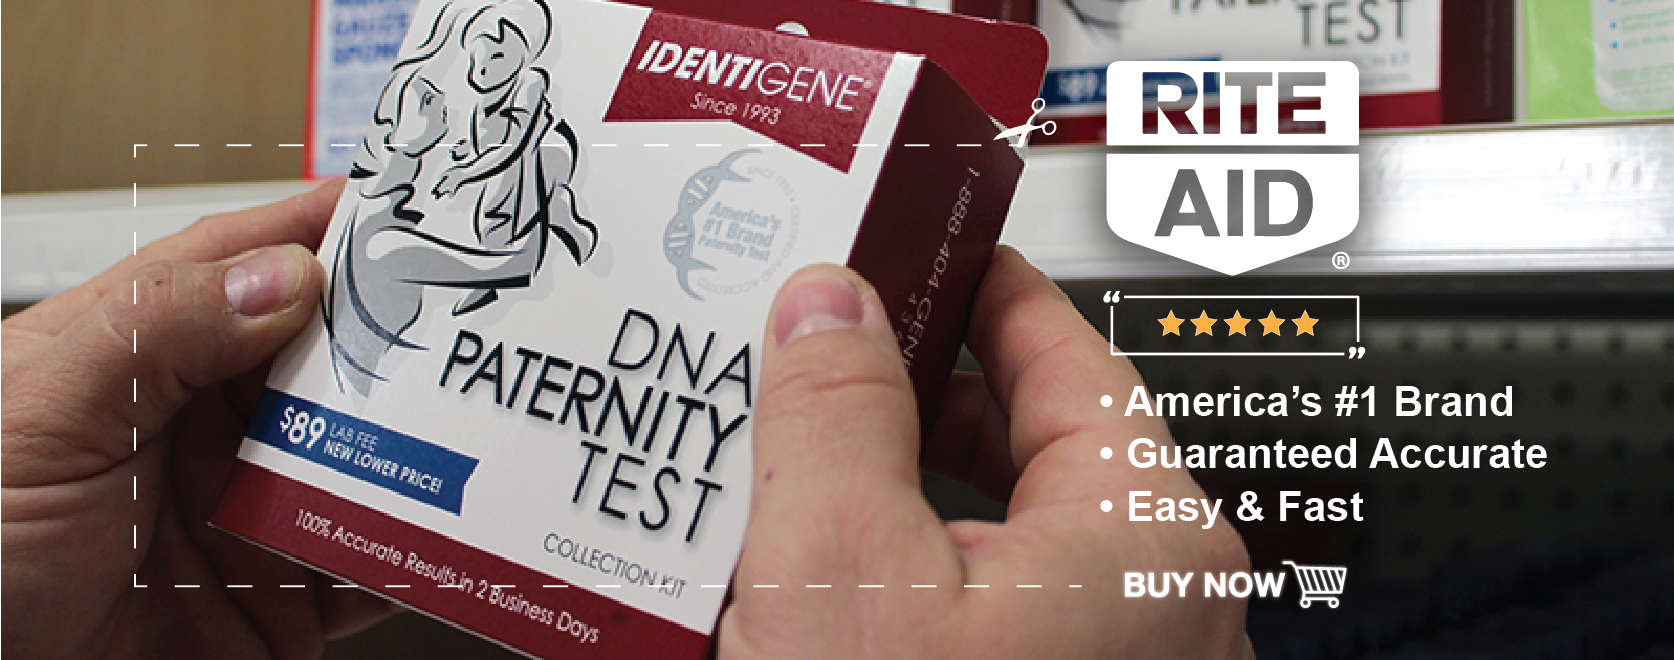 Get Deal Identigene Coupons, Identigene Coupon Code As the global leader in the field of DNA Testing, IDENTIGENE is committed to being on the cutting edge of offering new, service oriented DNA testing technologies.